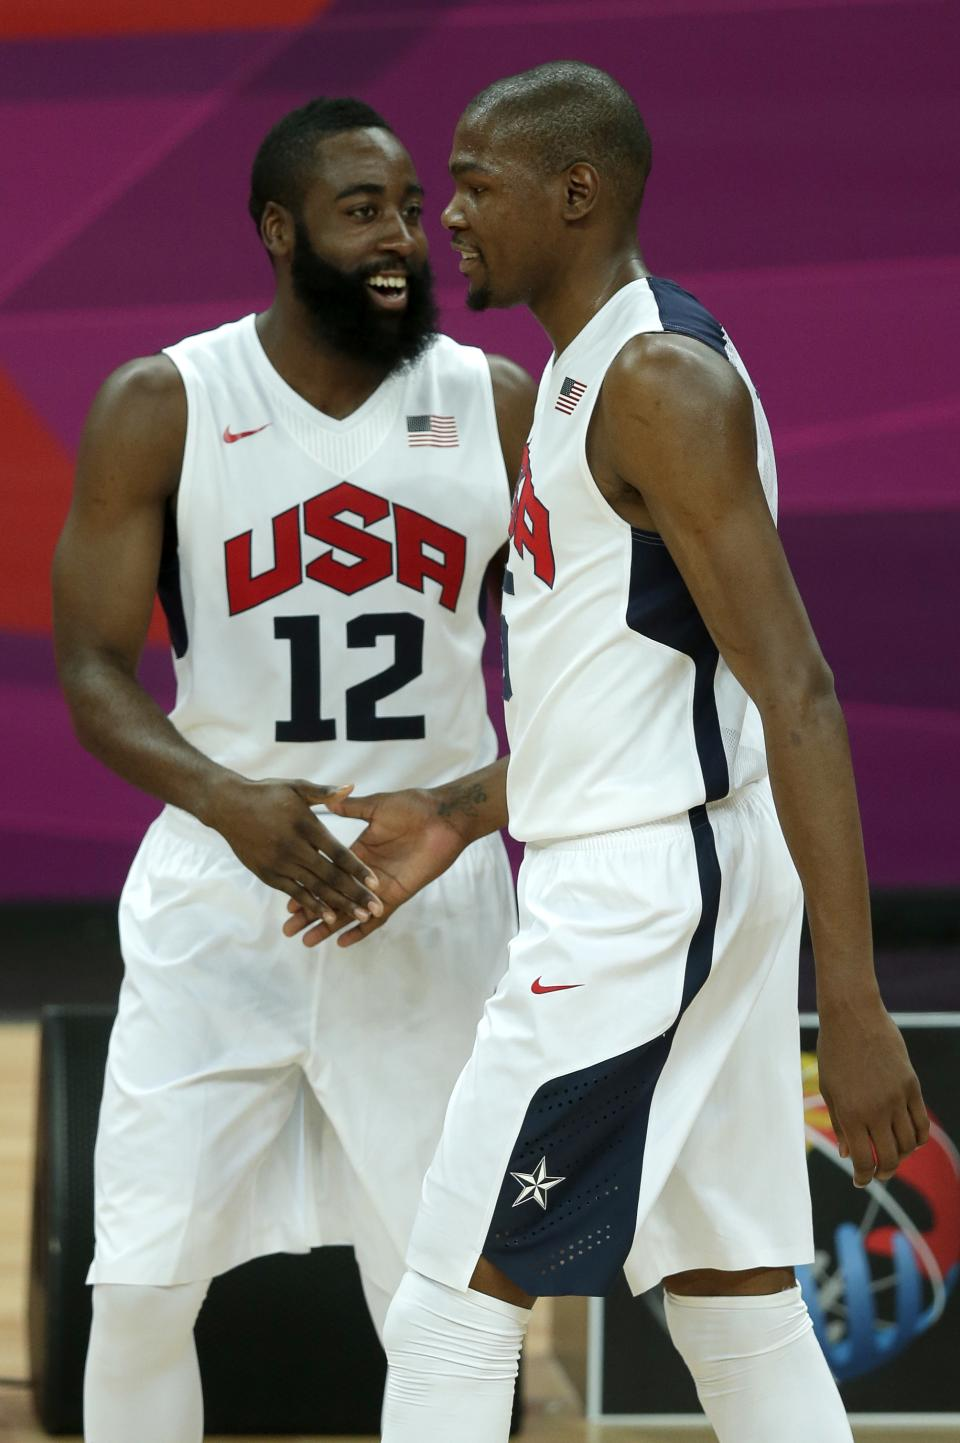 United States players James Harden (12) and Kevin Durant celebrate a basket during a men's basketball game against Nigeria at the 2012 Summer Olympics, Thursday, Aug. 2, 2012, in London. (AP Photo/Charlie Riedel)